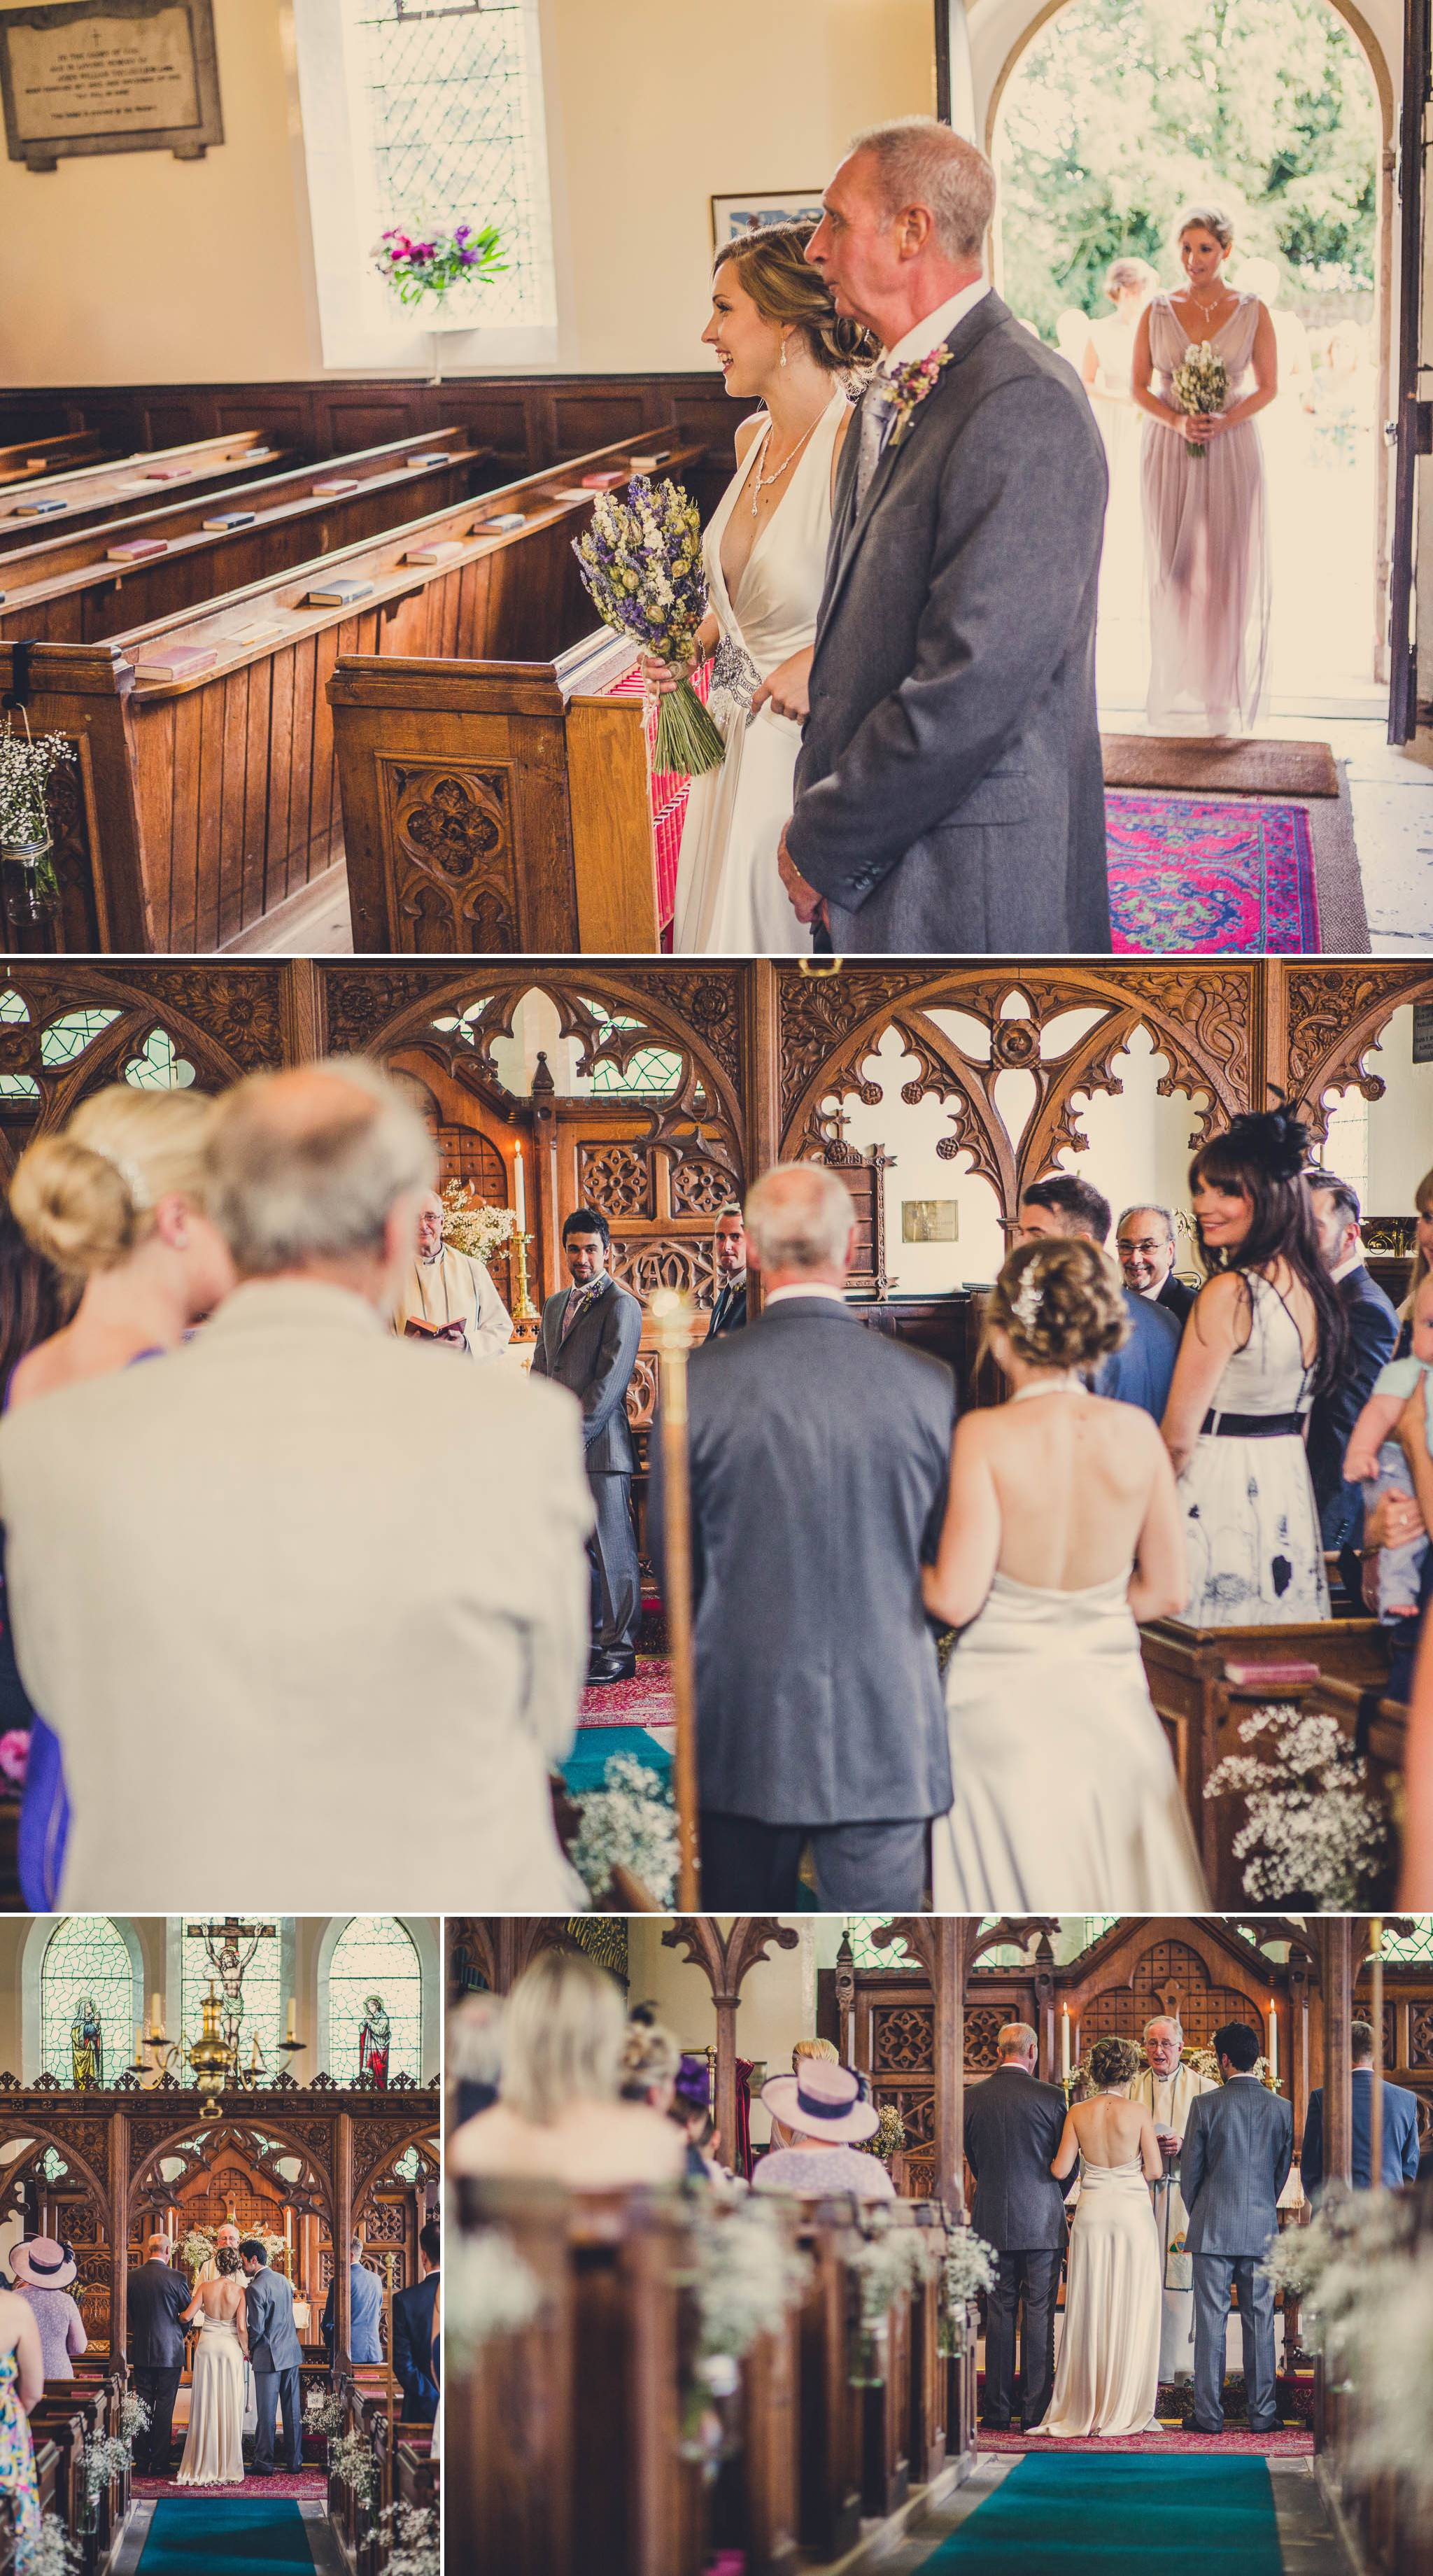 the-inn-at-grinshill-wedding 7.jpg